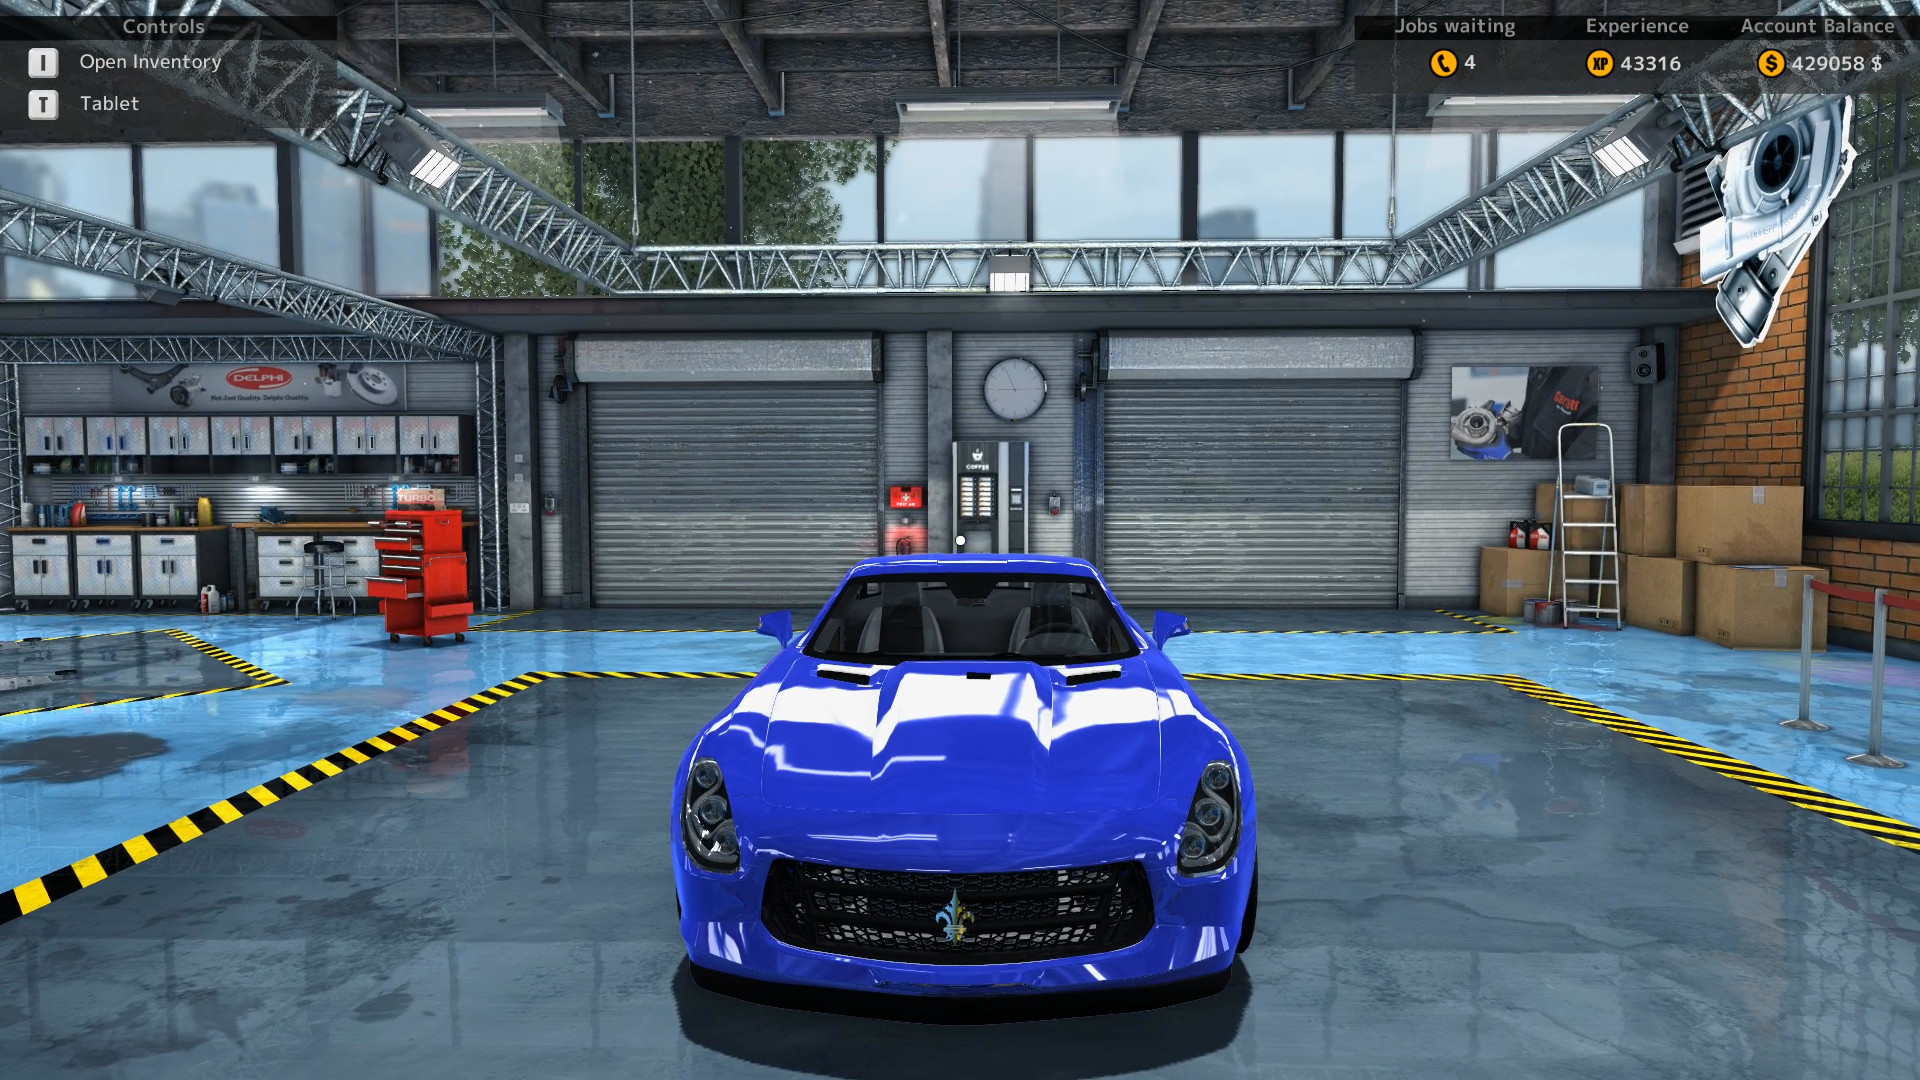 Frontal view of the Royale GTR from Car Mechanic Simulator 2015 after a complete rebuild.